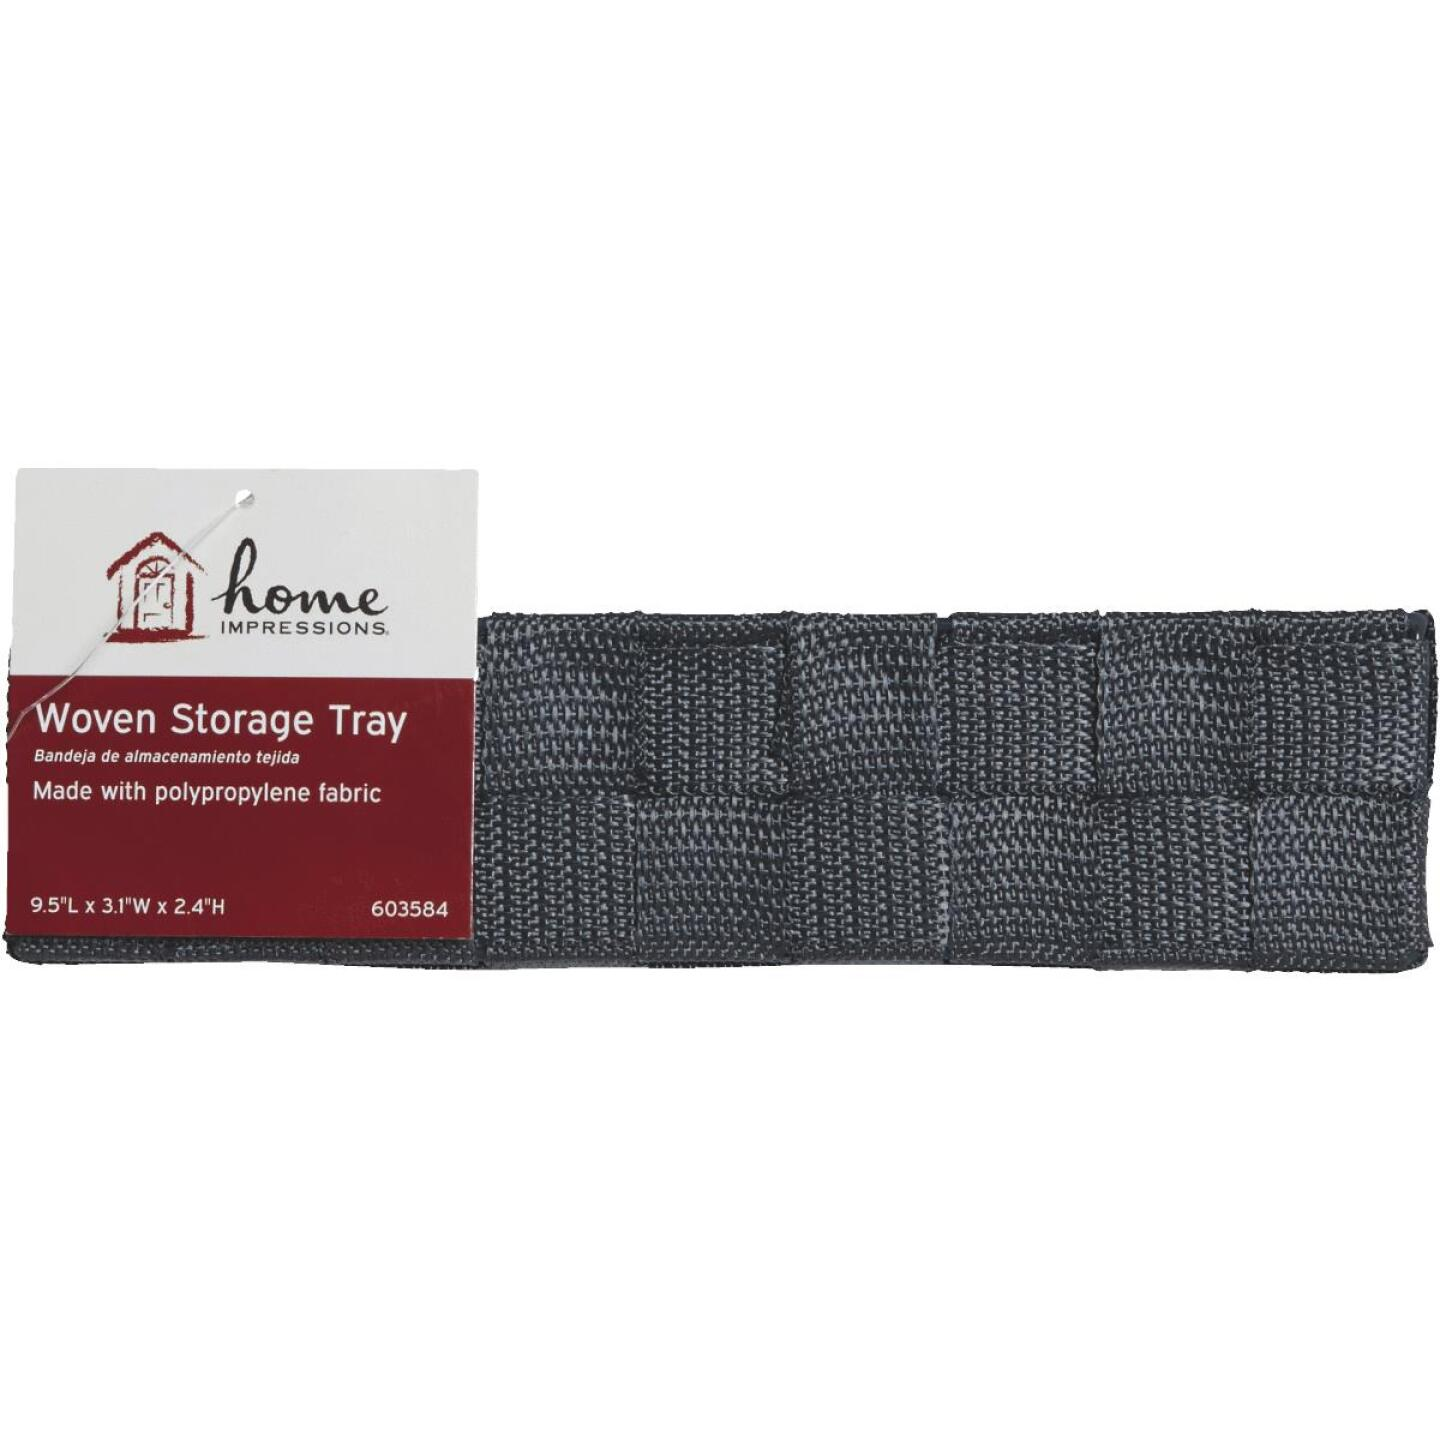 Home Impressions 3.25 In. W. x 2.25 In. H. x 9.5 In. L. Woven Storage Tray, Gray Image 2